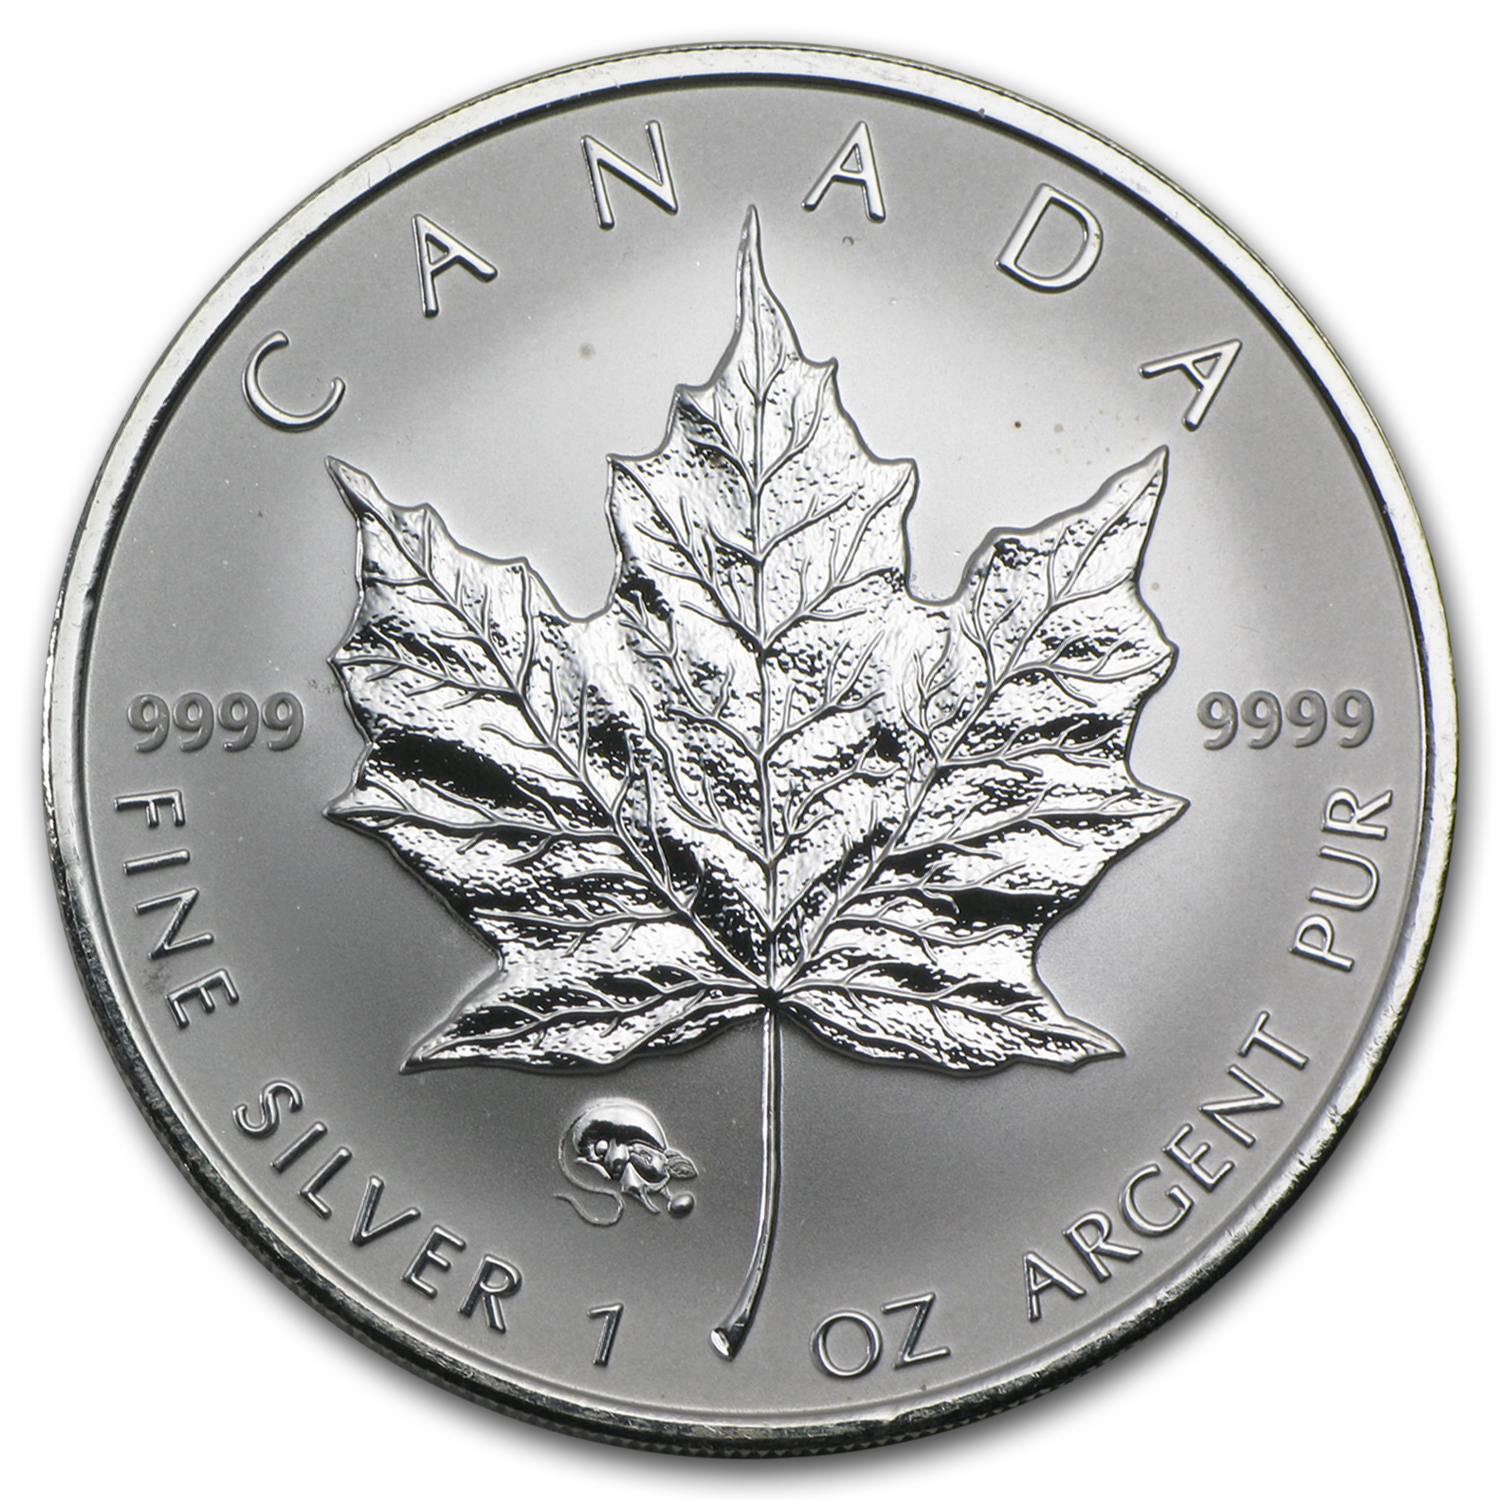 2008 1 oz Silver Canadian Maple Leaf - Lunar RAT Privy